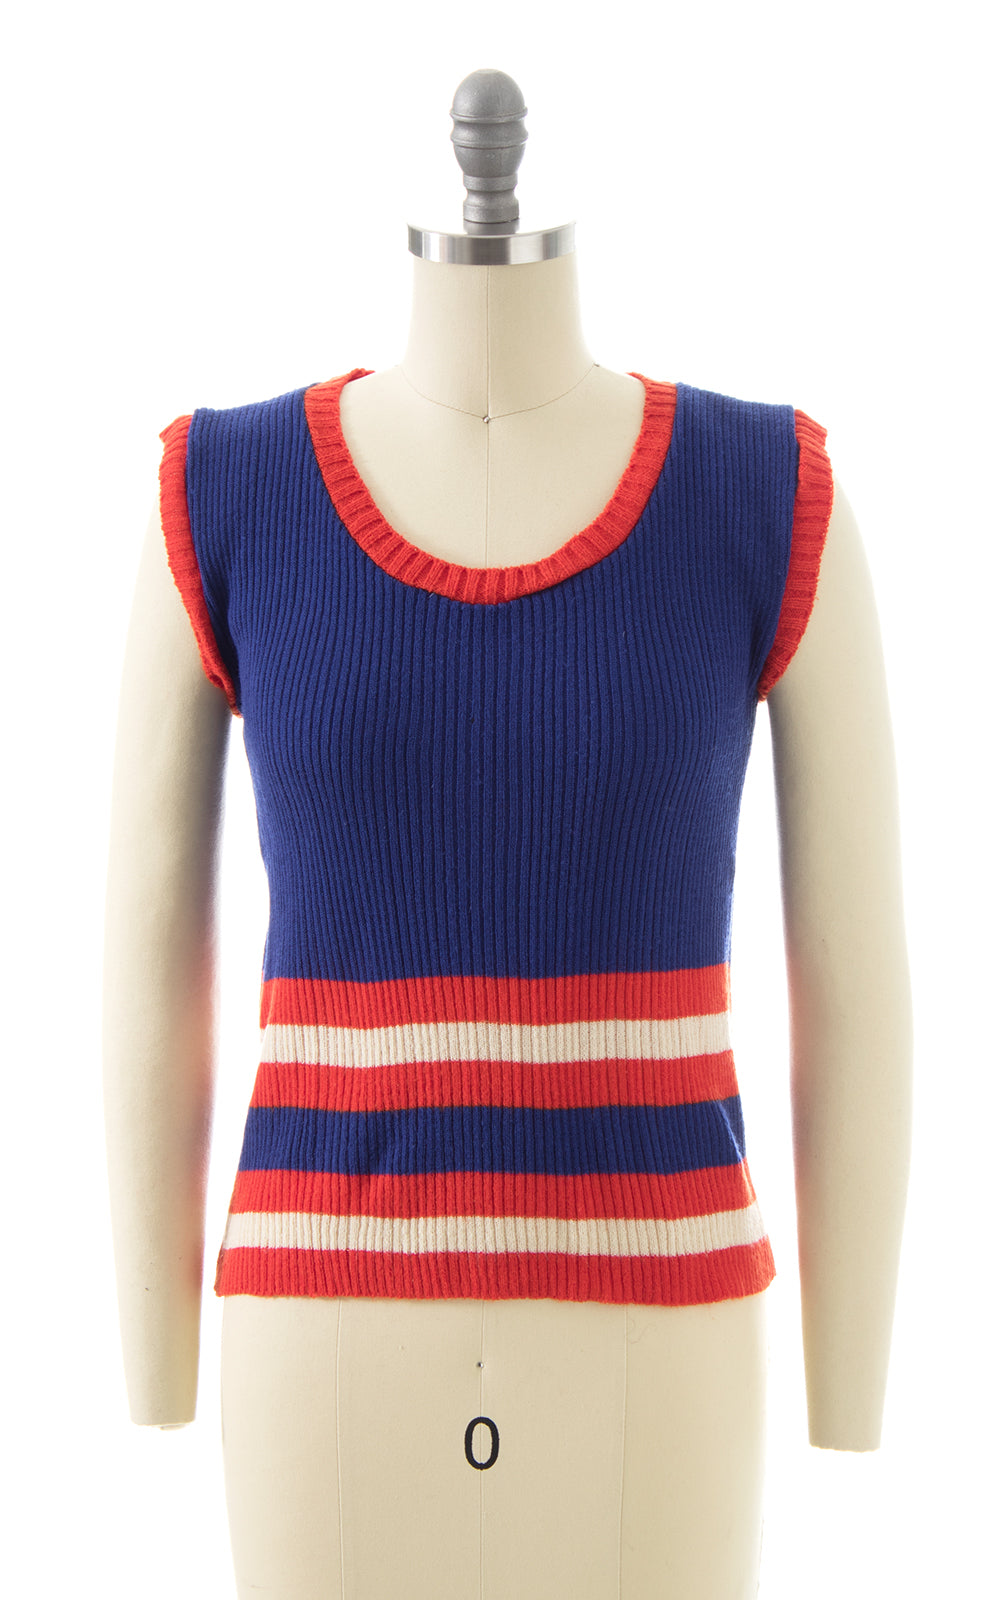 1970s Striped Sweater Vest